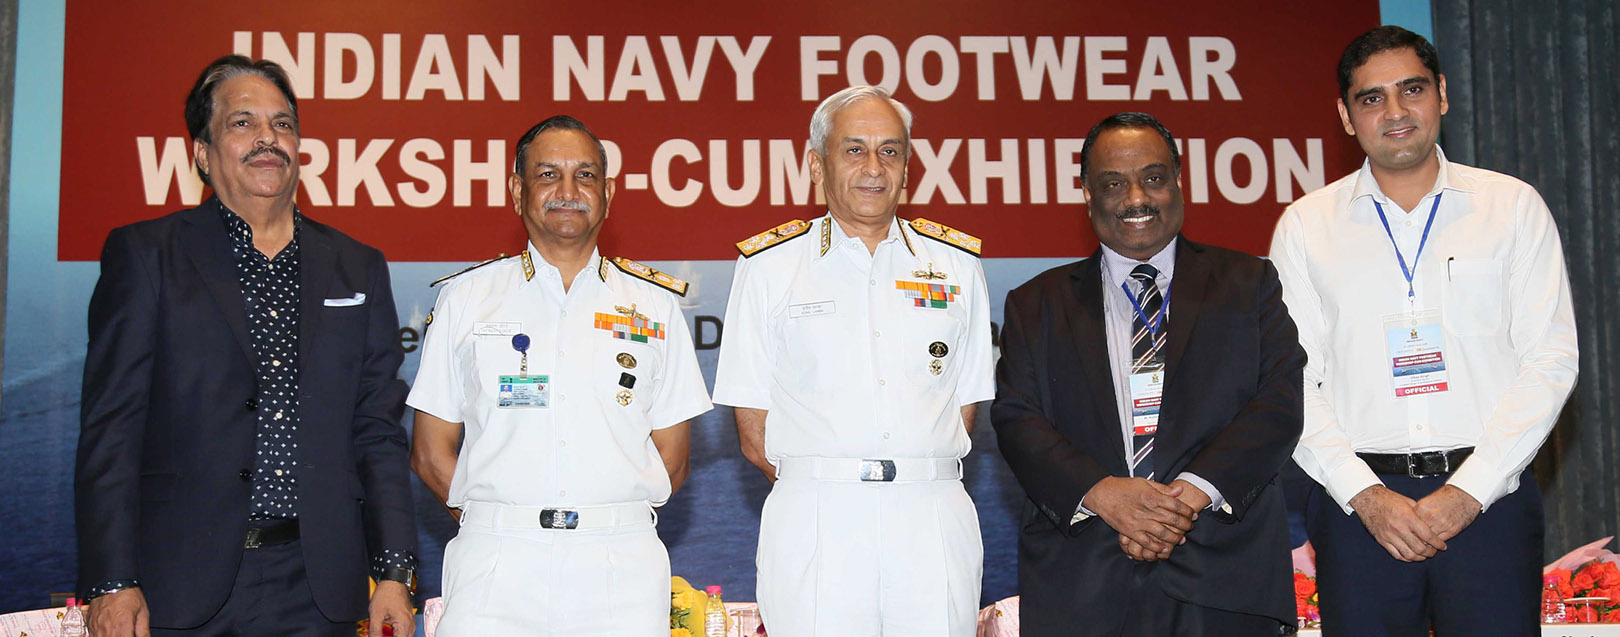 Indian Navy, Leather Exports Council and FDDI conduct maiden workshop at New Delhi